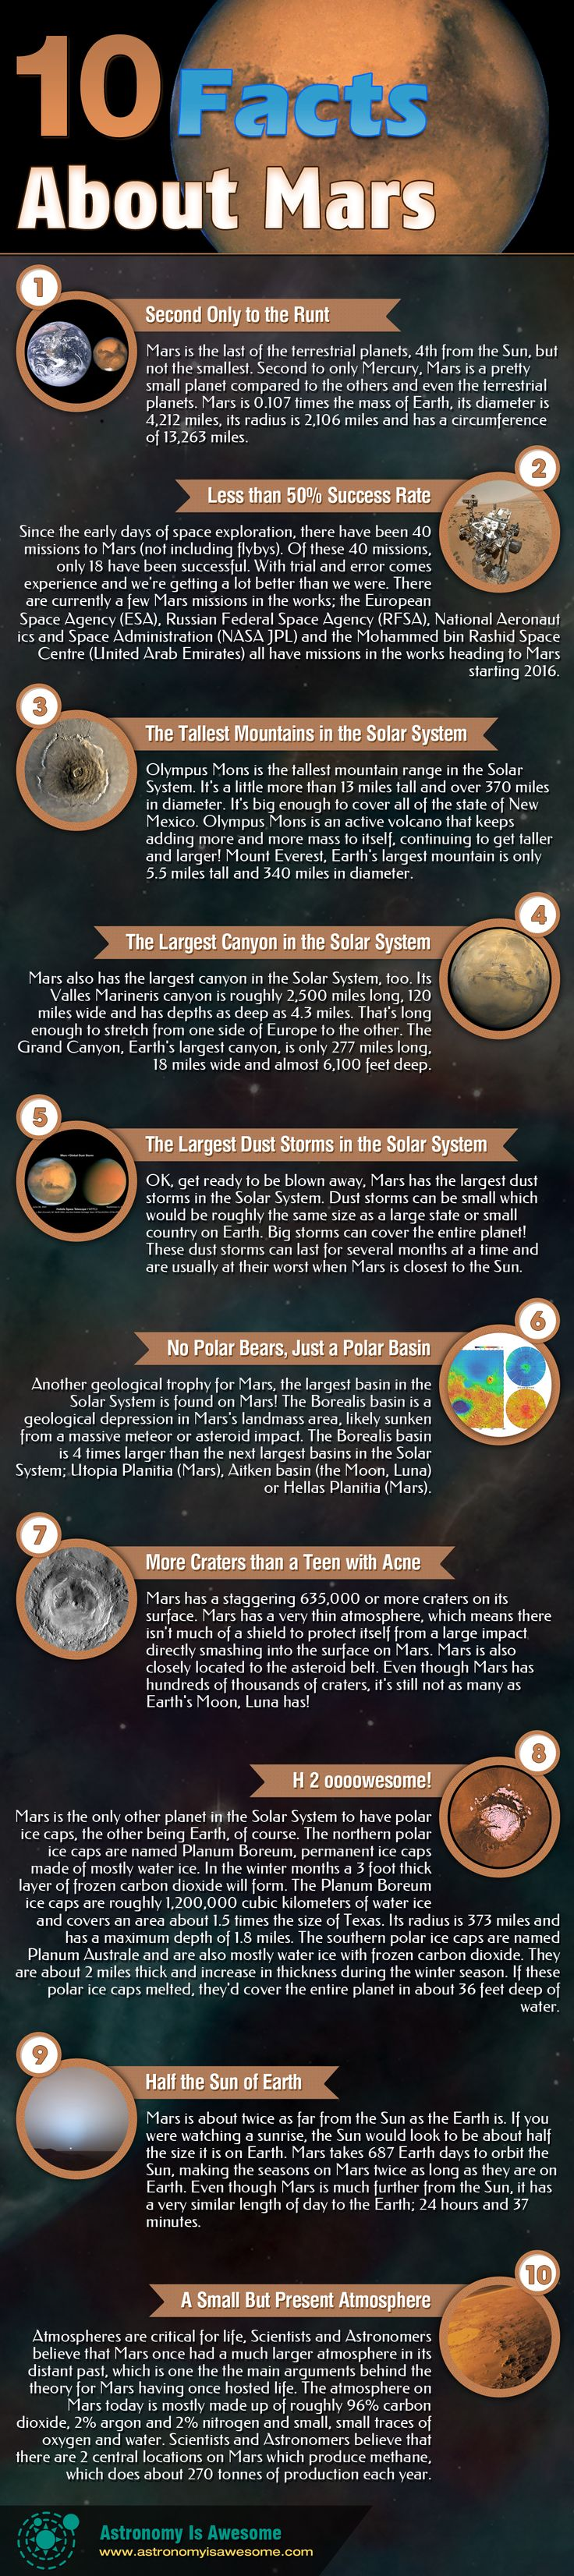 Are these the only 10 Facts About Mars you'll ever need to know? Who knows, but check out this infographic with the most awesome facts about the red planet!